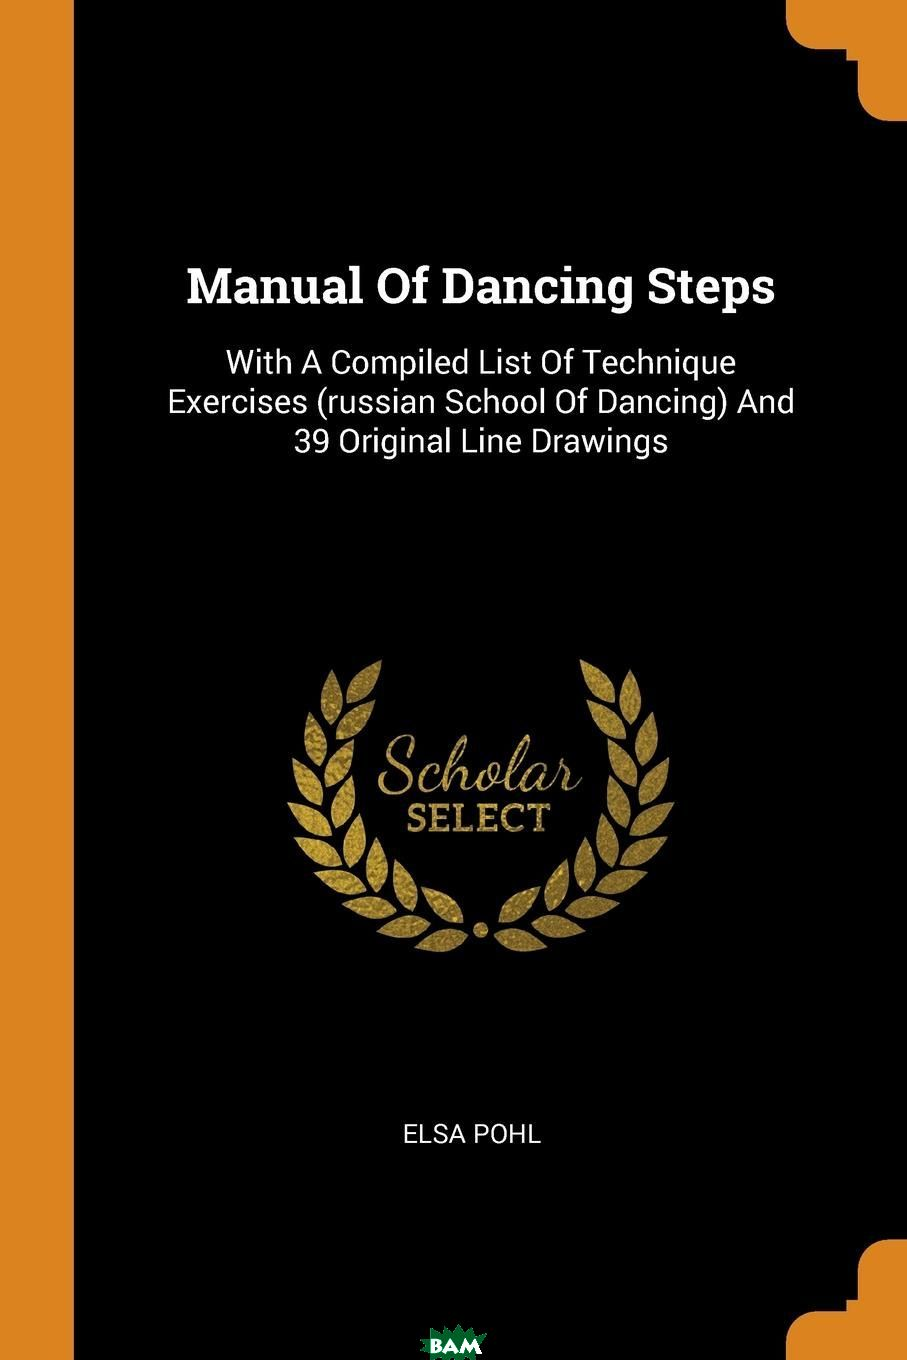 Купить Manual Of Dancing Steps. With A Compiled List Of Technique Exercises (russian School Of Dancing) And 39 Original Line Drawings, Elsa Pohl, 9780353499744